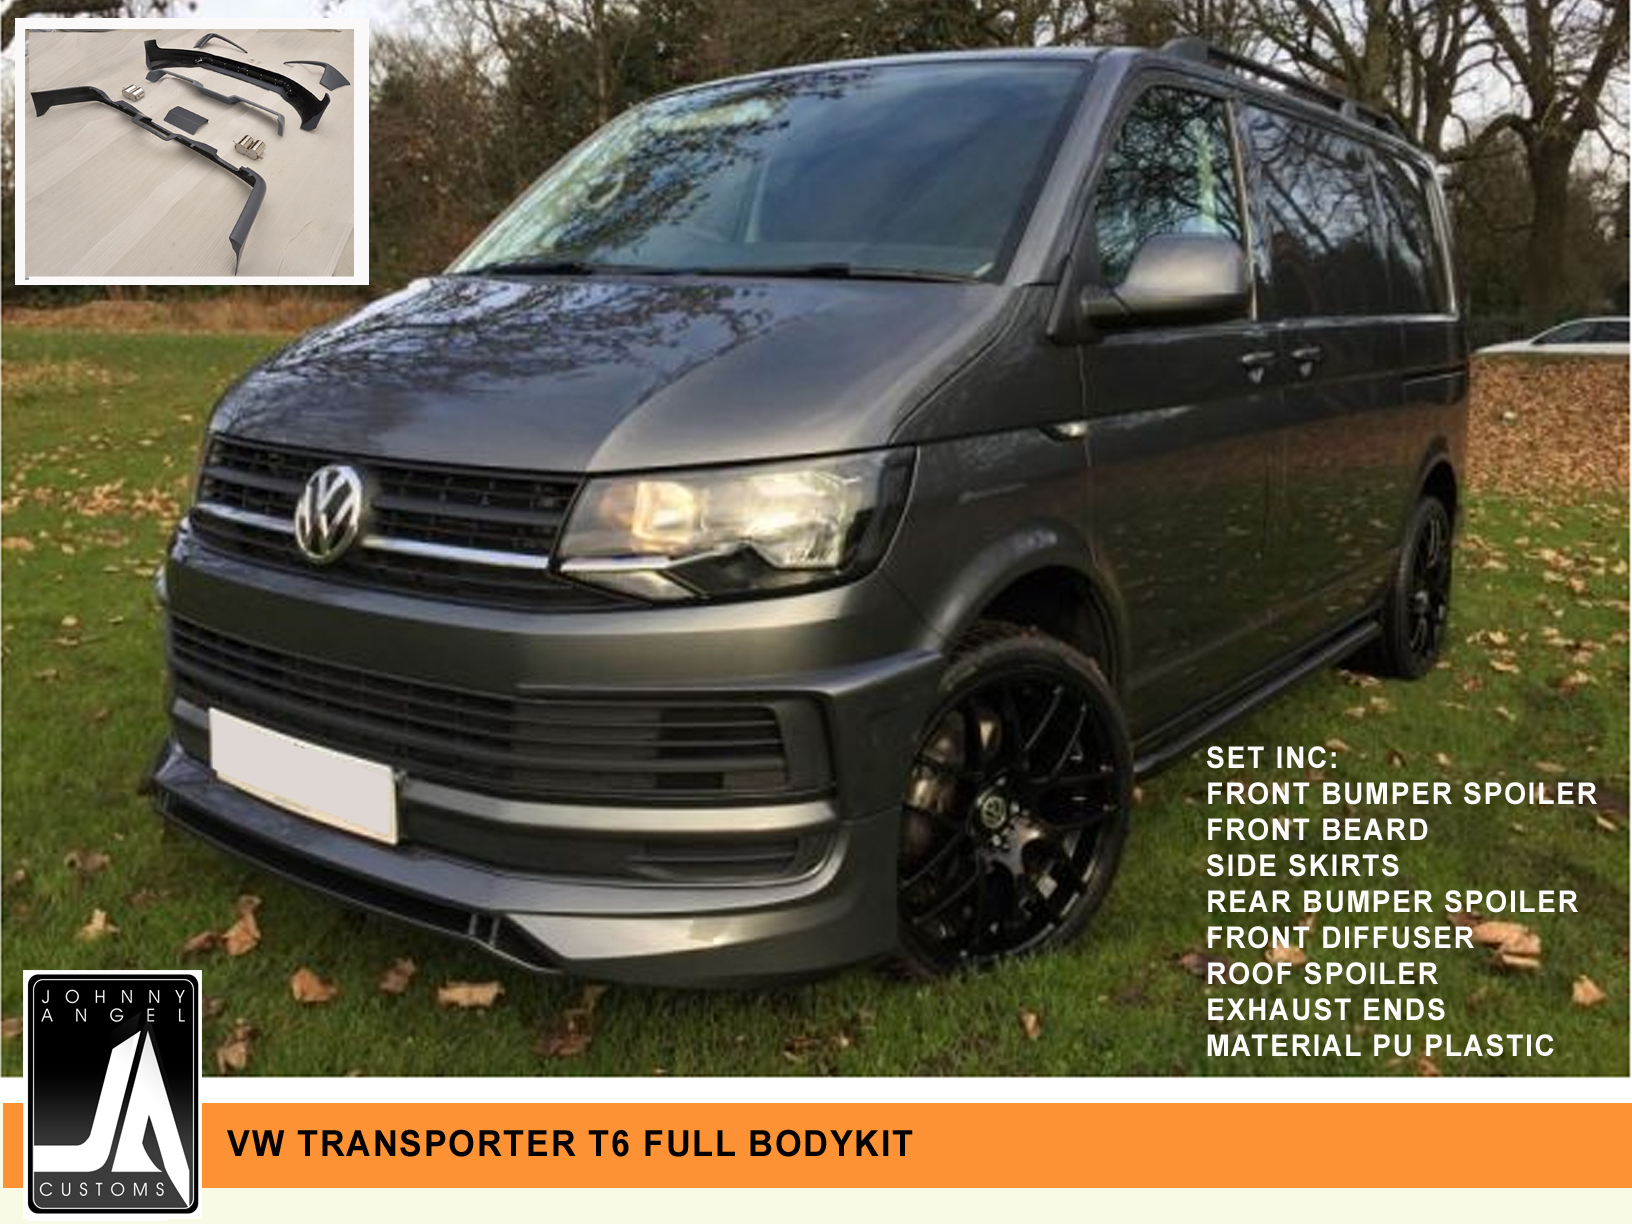 VW TRANSPORTER T6 FULL BODYKIT   Johnny Angel Customs pic 1